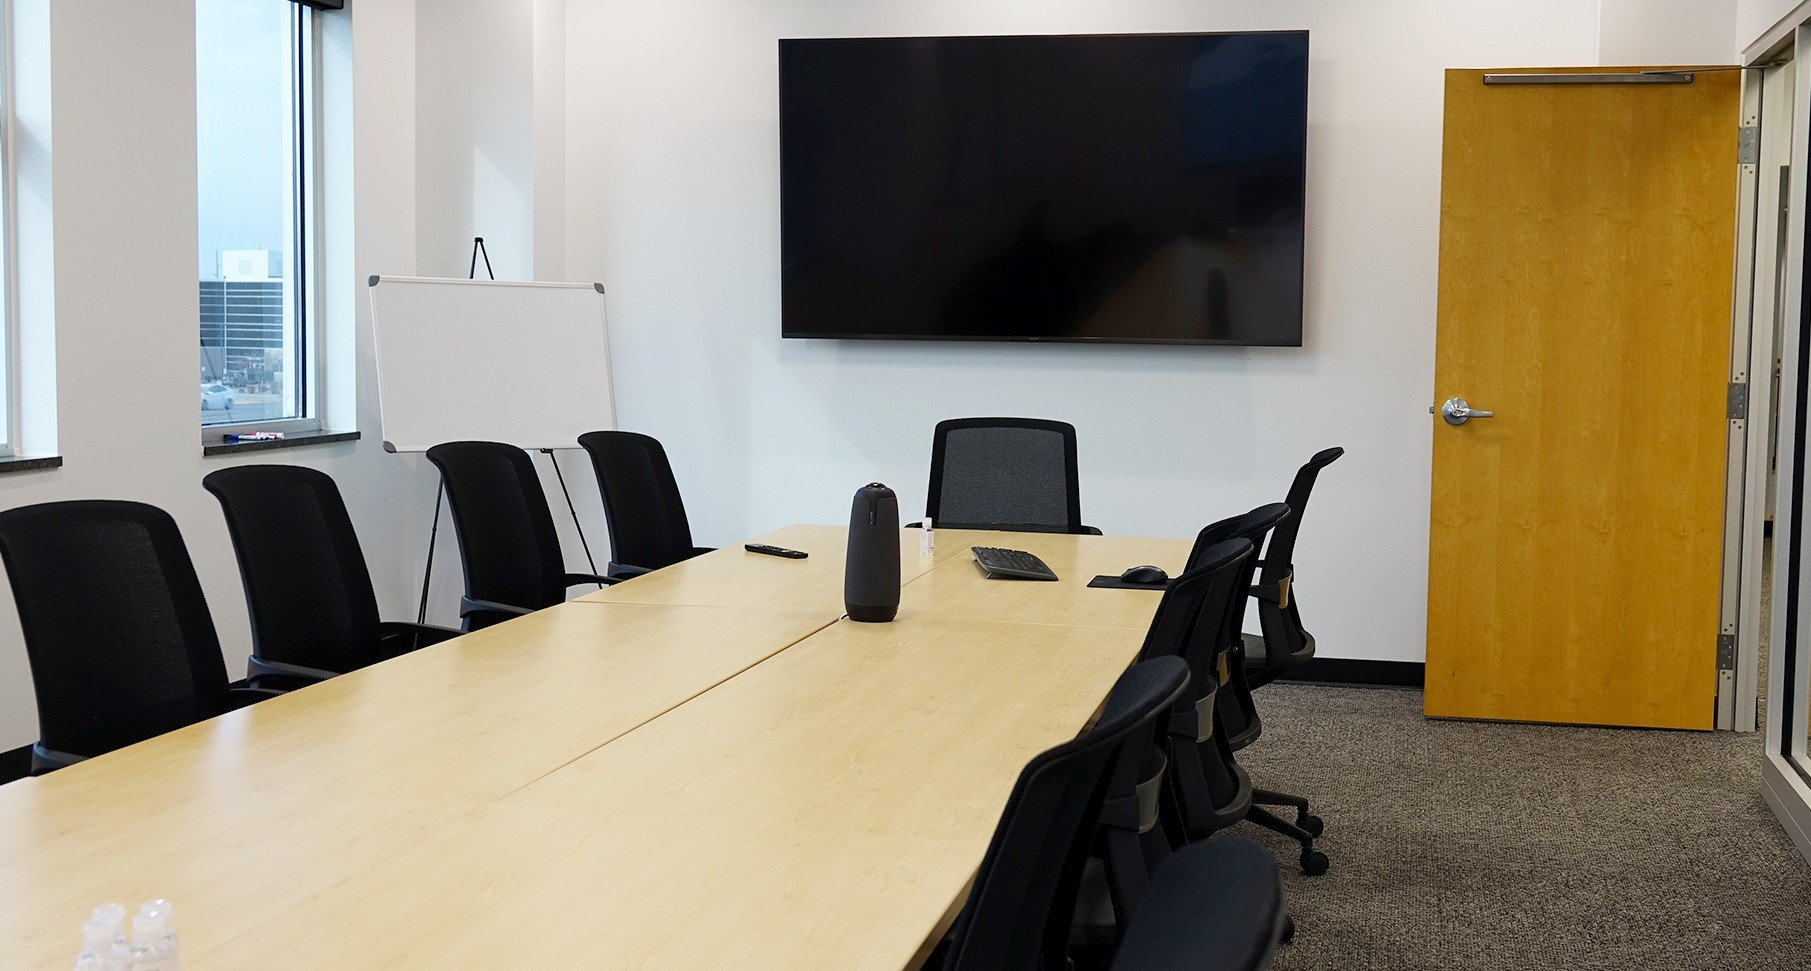 New training/ meeting space in our Bismarck building